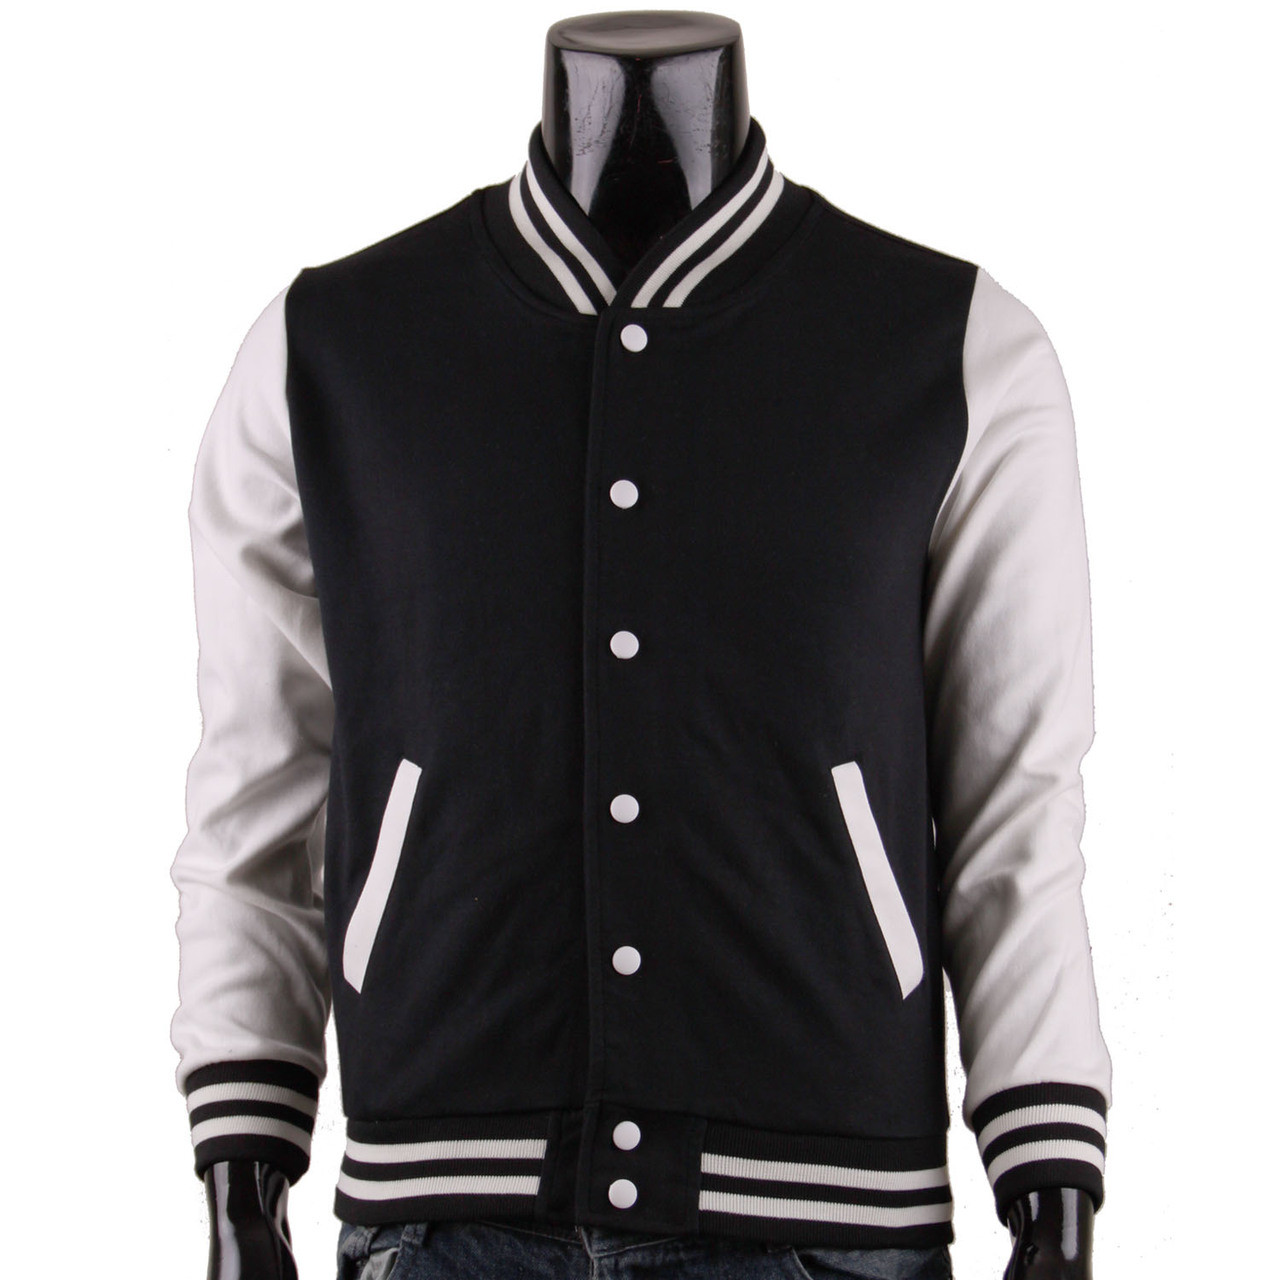 Bcpolo Baseball Jacket Black Cotton Baseball Jacket Varsity Jacket